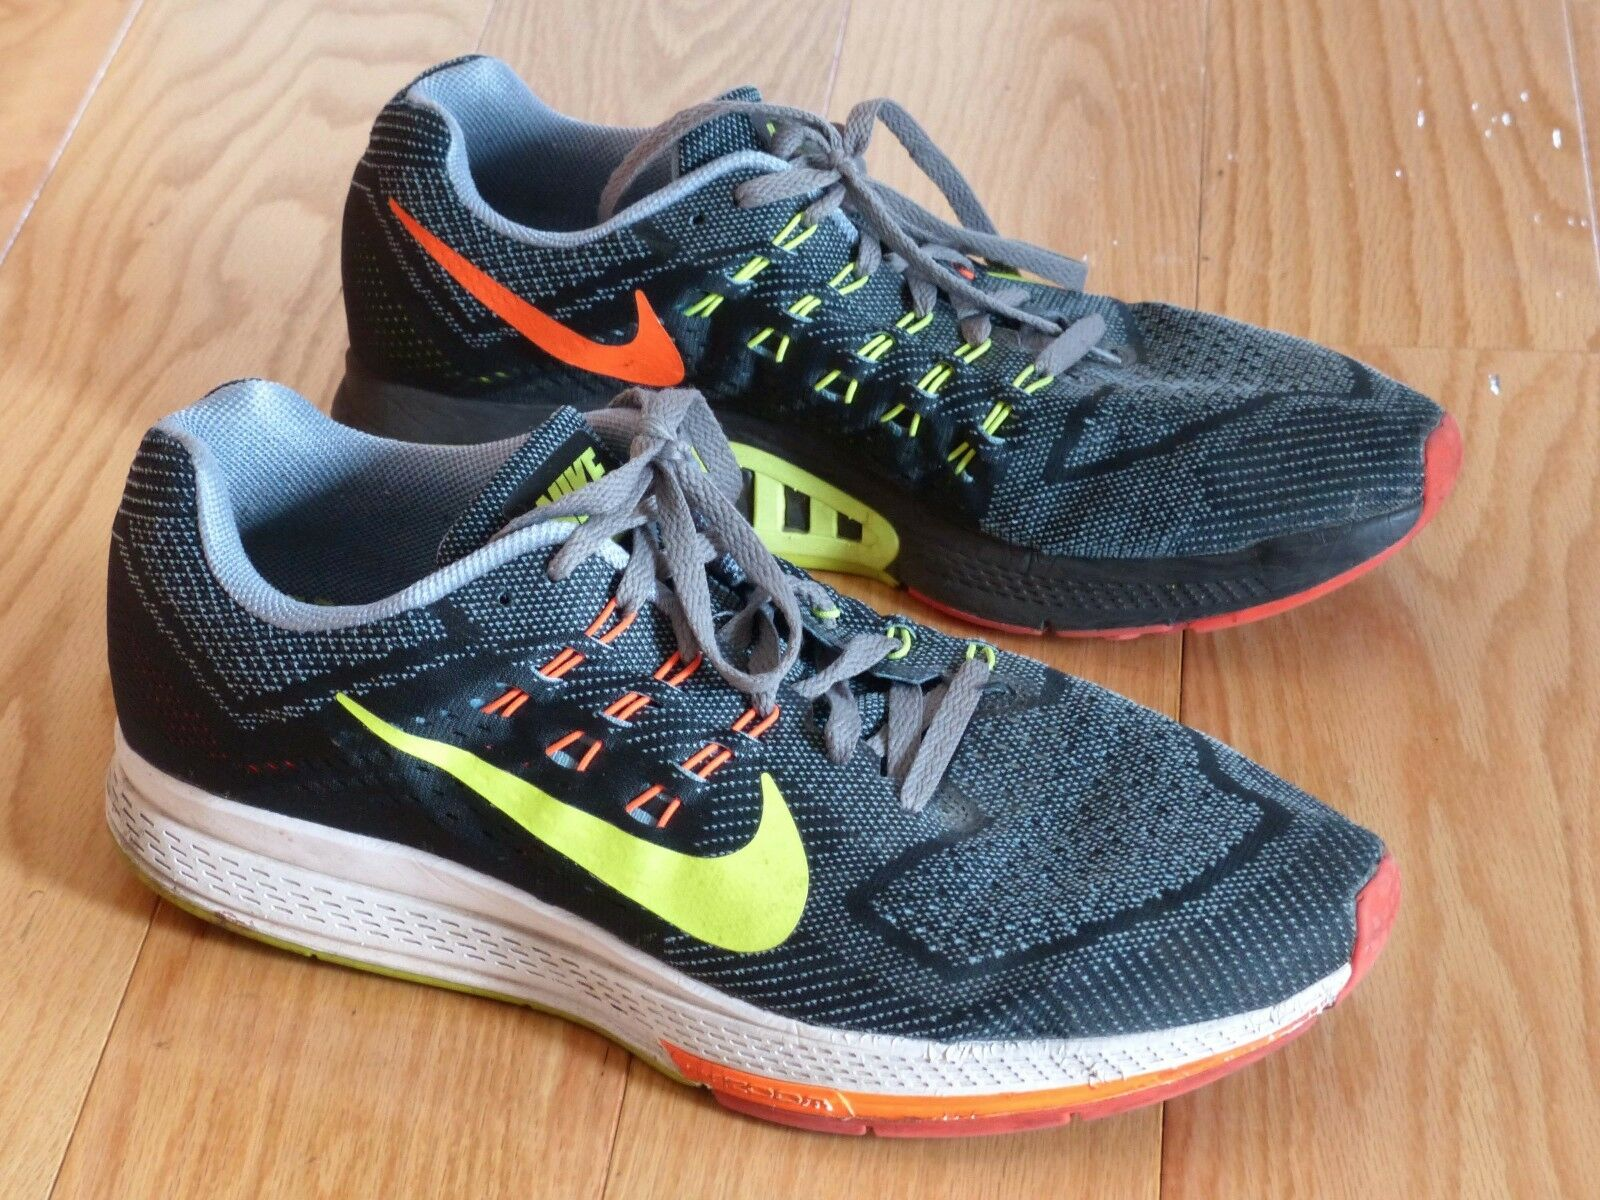 3e5ace83556 ... wholesale nike zoom structure 18 mas gris talla 14 el mas 18 popular de  zapatos para